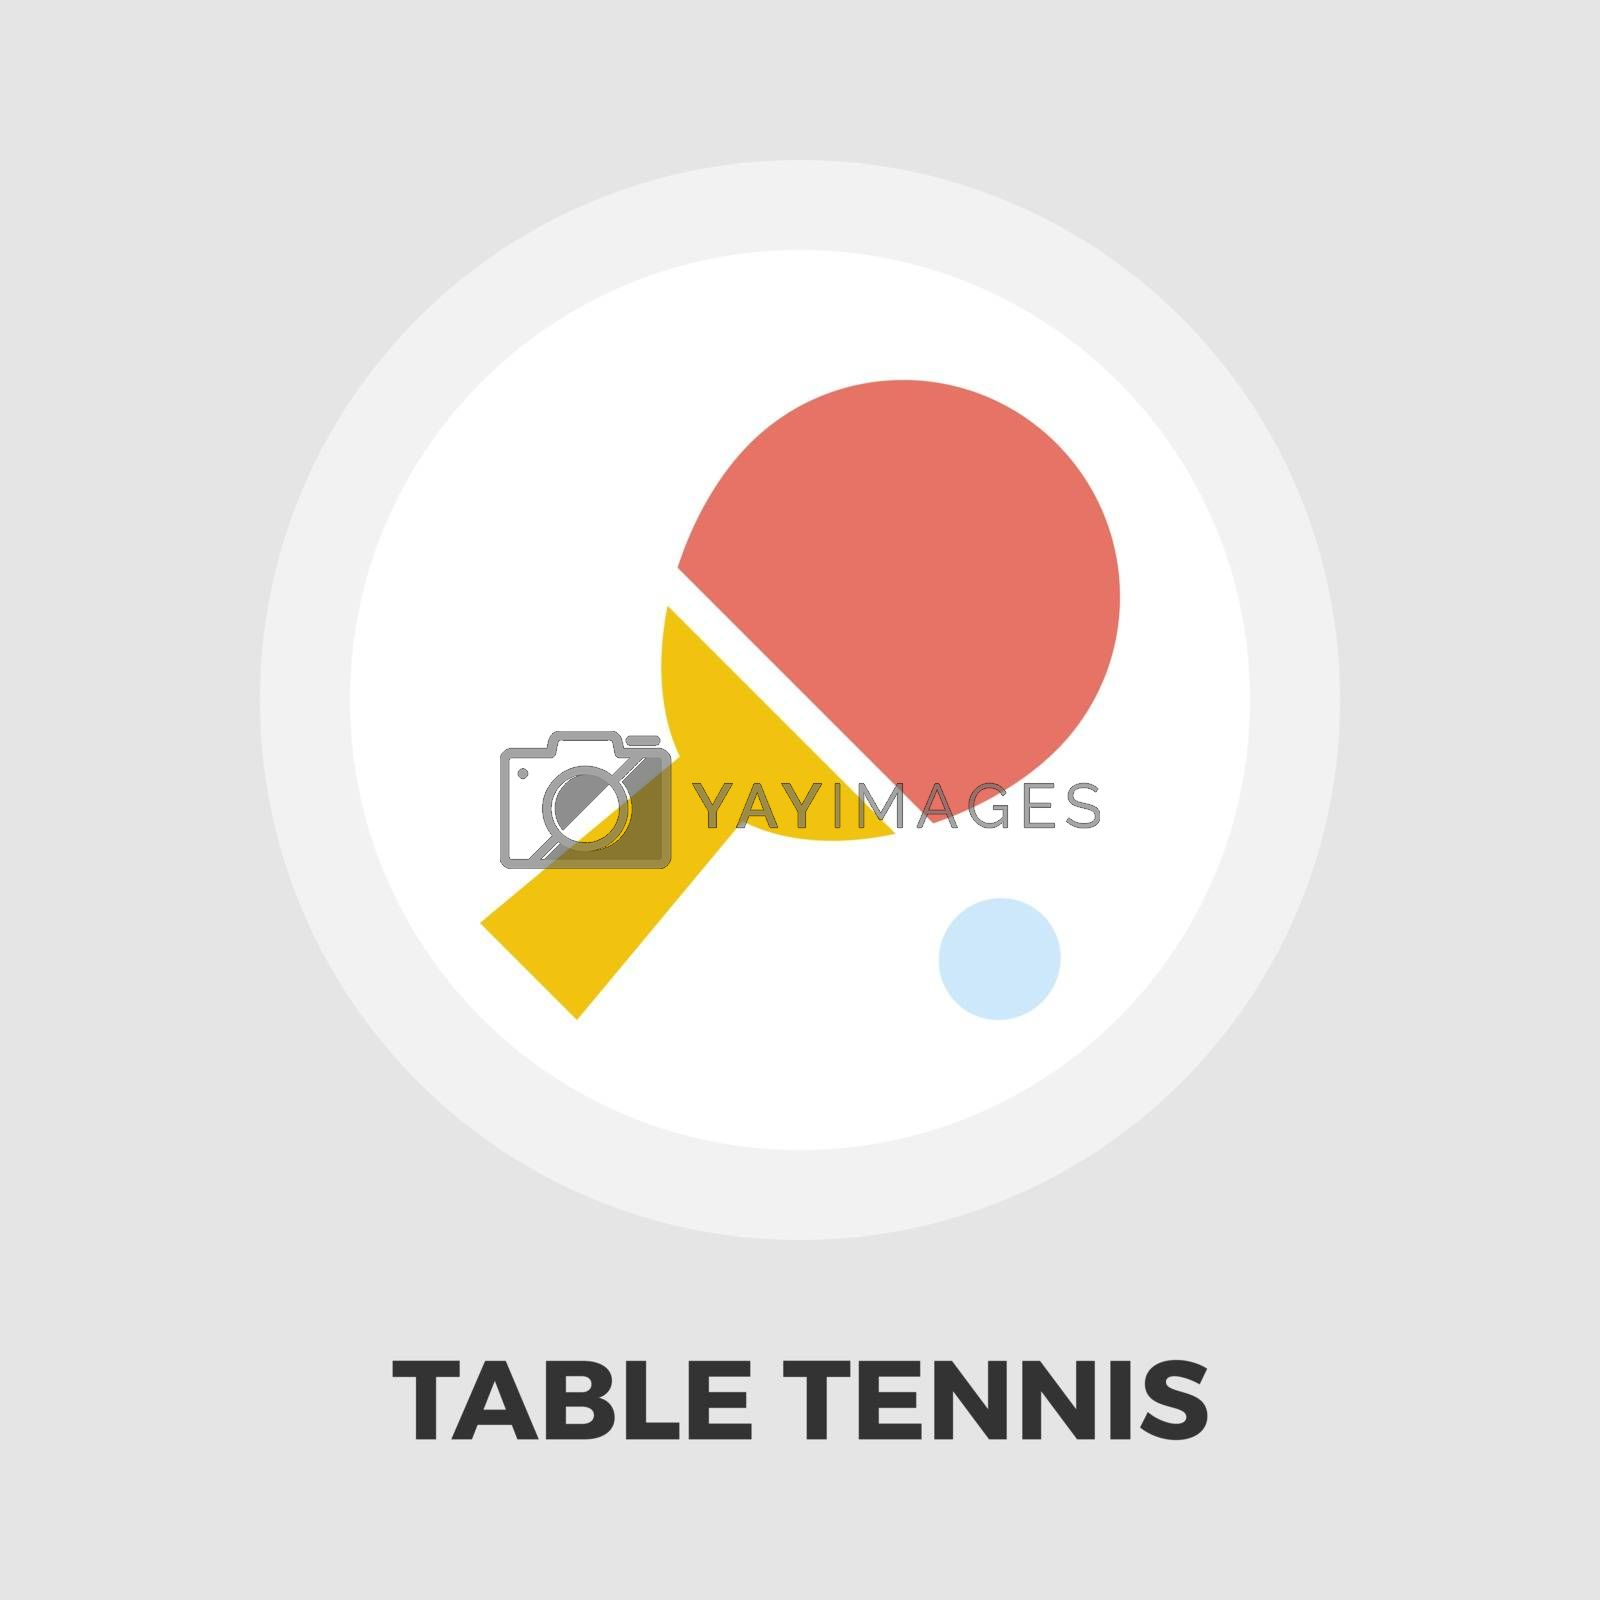 Table tennis icon vector. Flat icon isolated on the white background. Editable EPS file. Vector illustration.